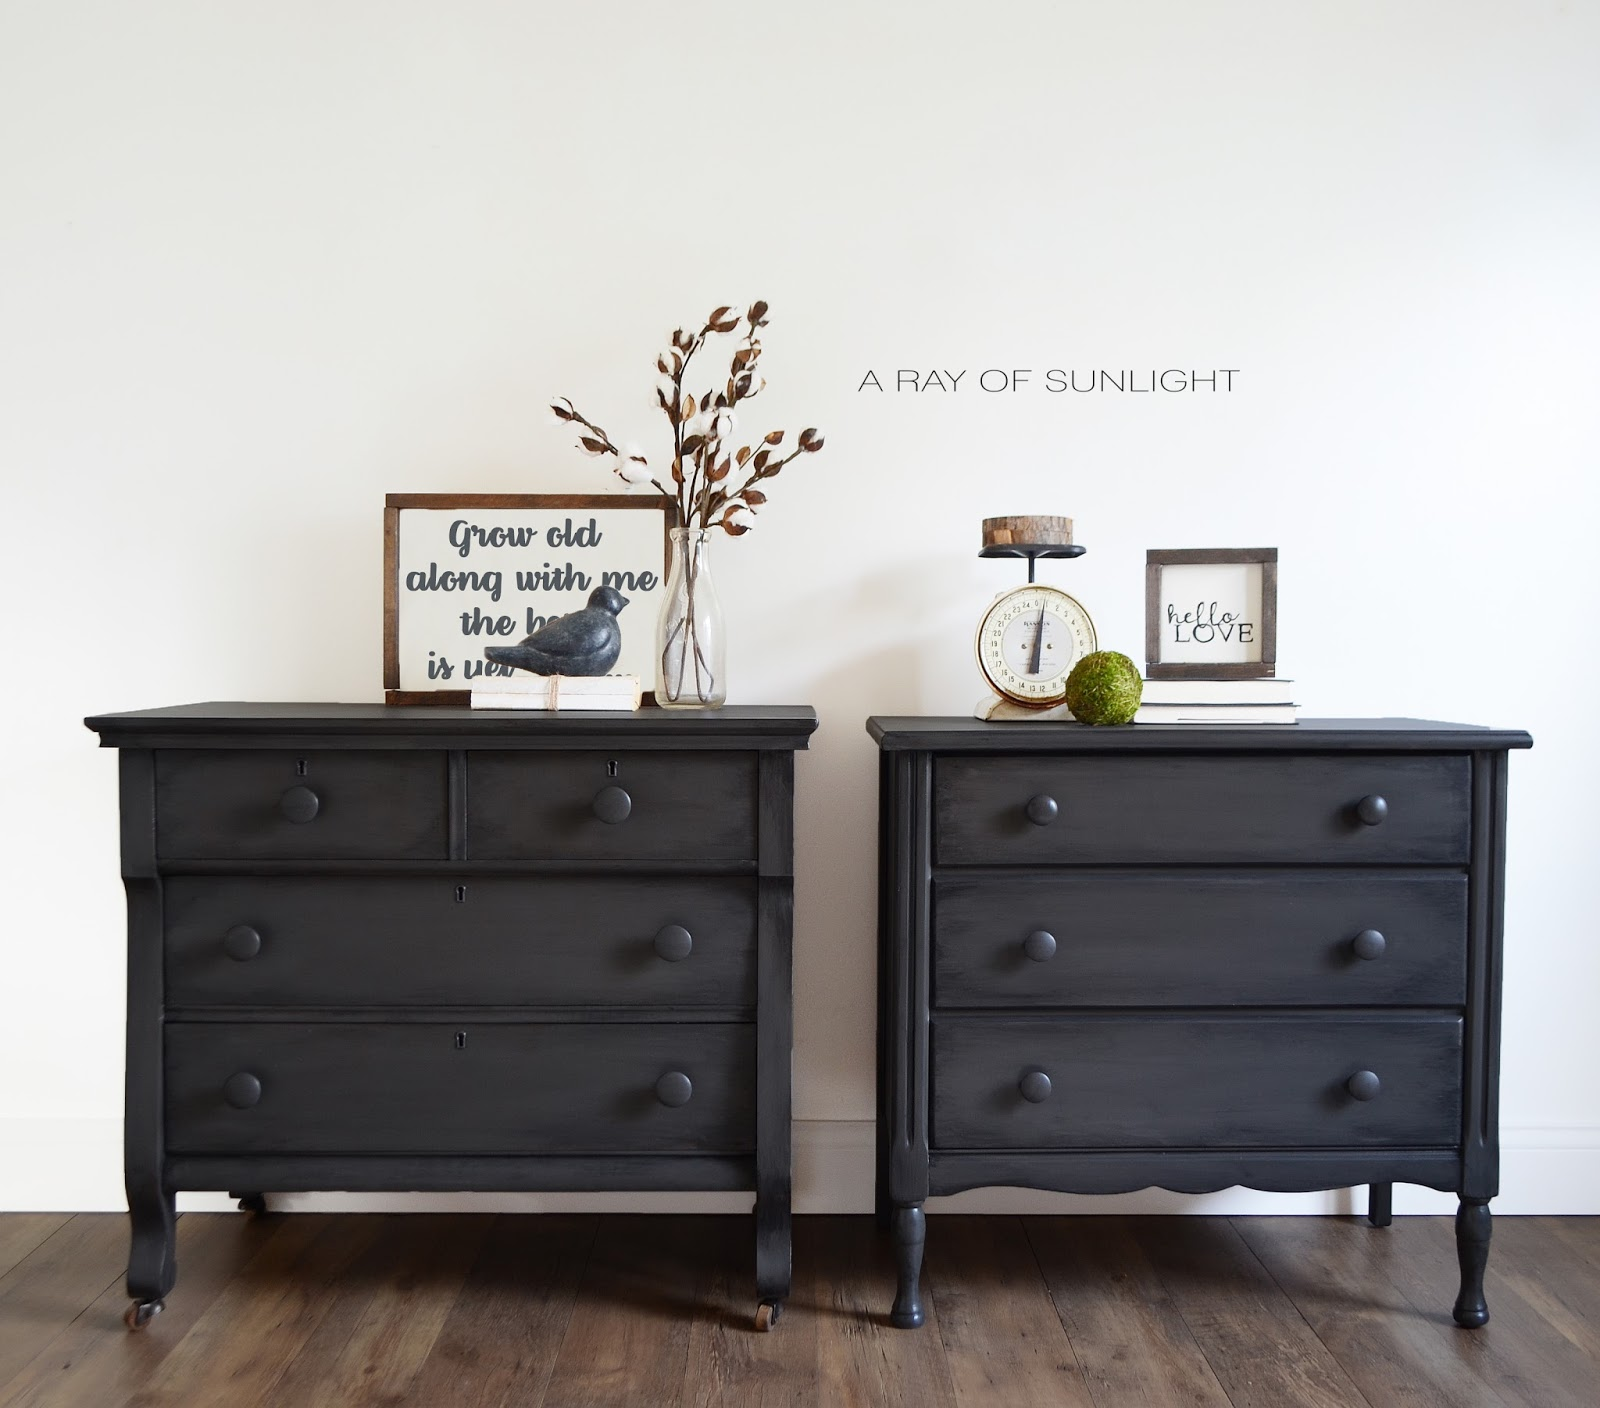 A Ray of Sunlight His and Hers Nightstands